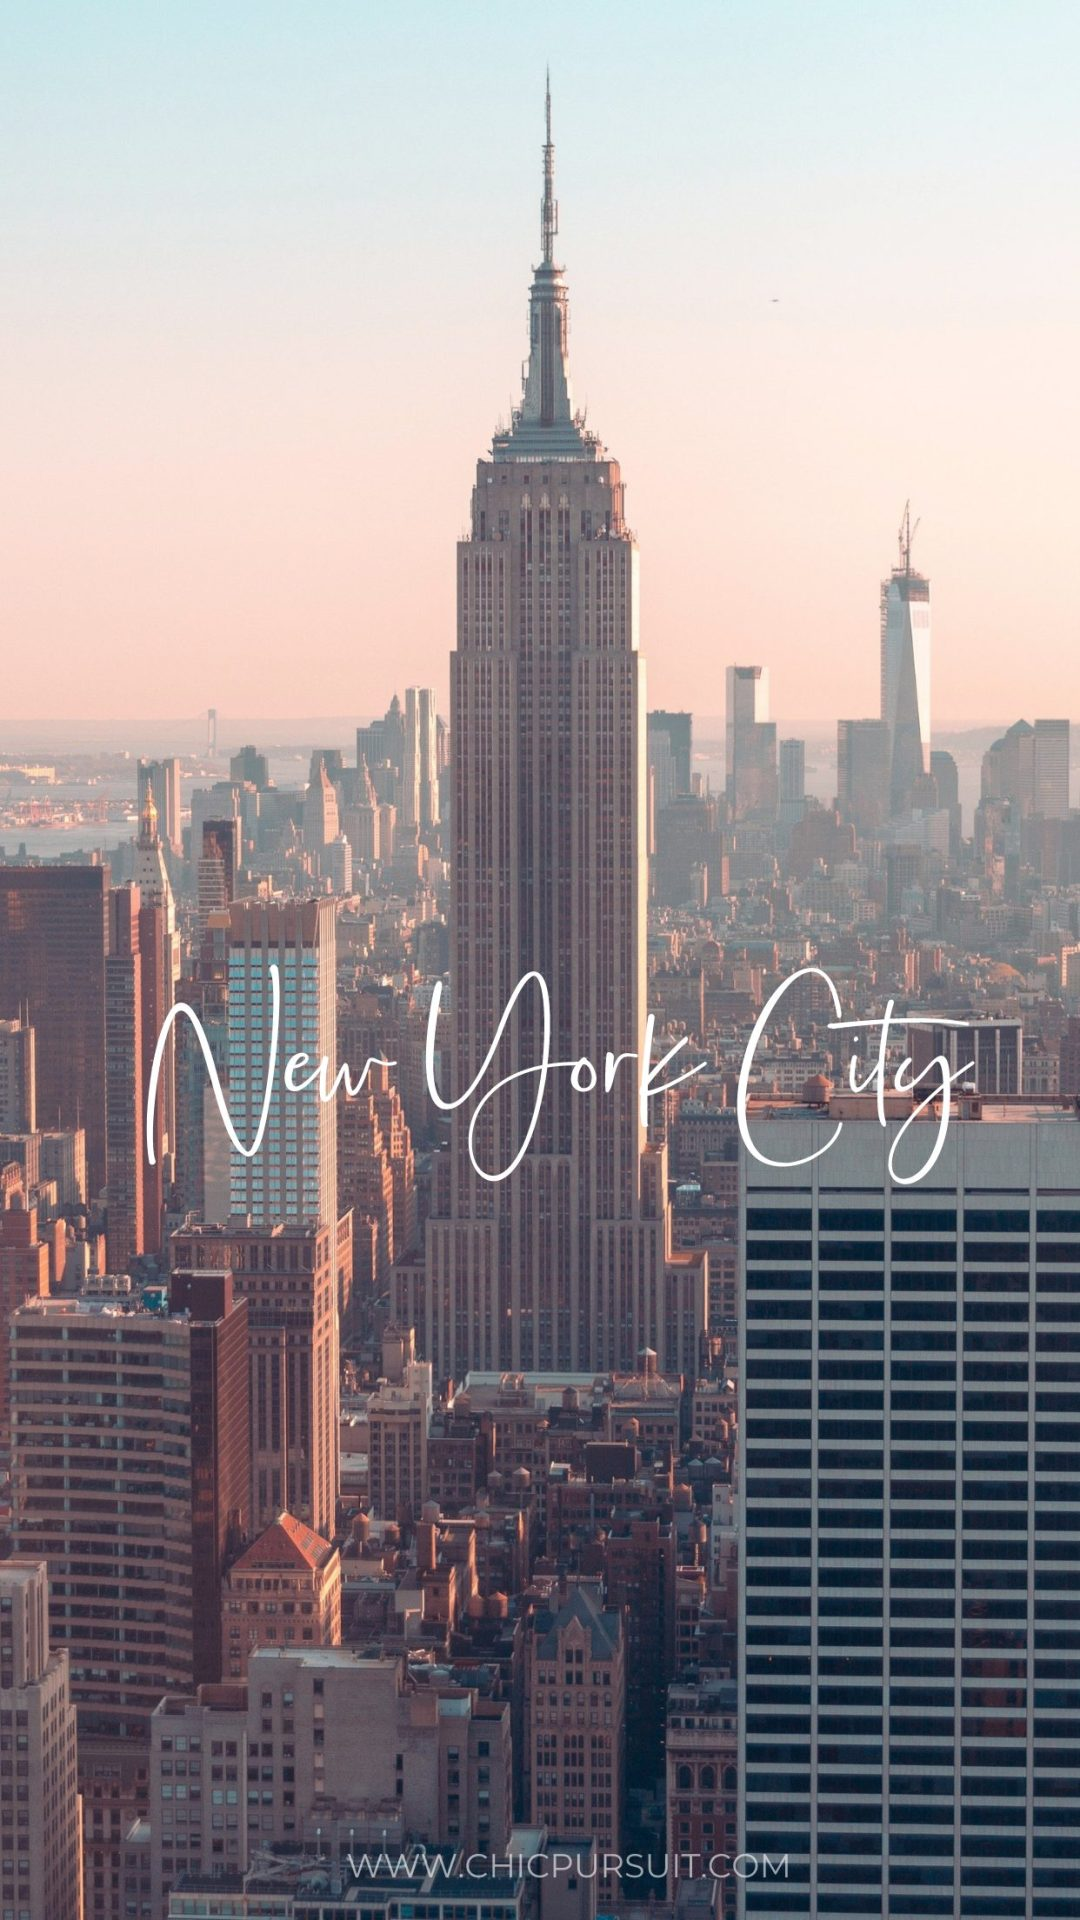 Pretty New York City wallpapers for iPhone with empire state building